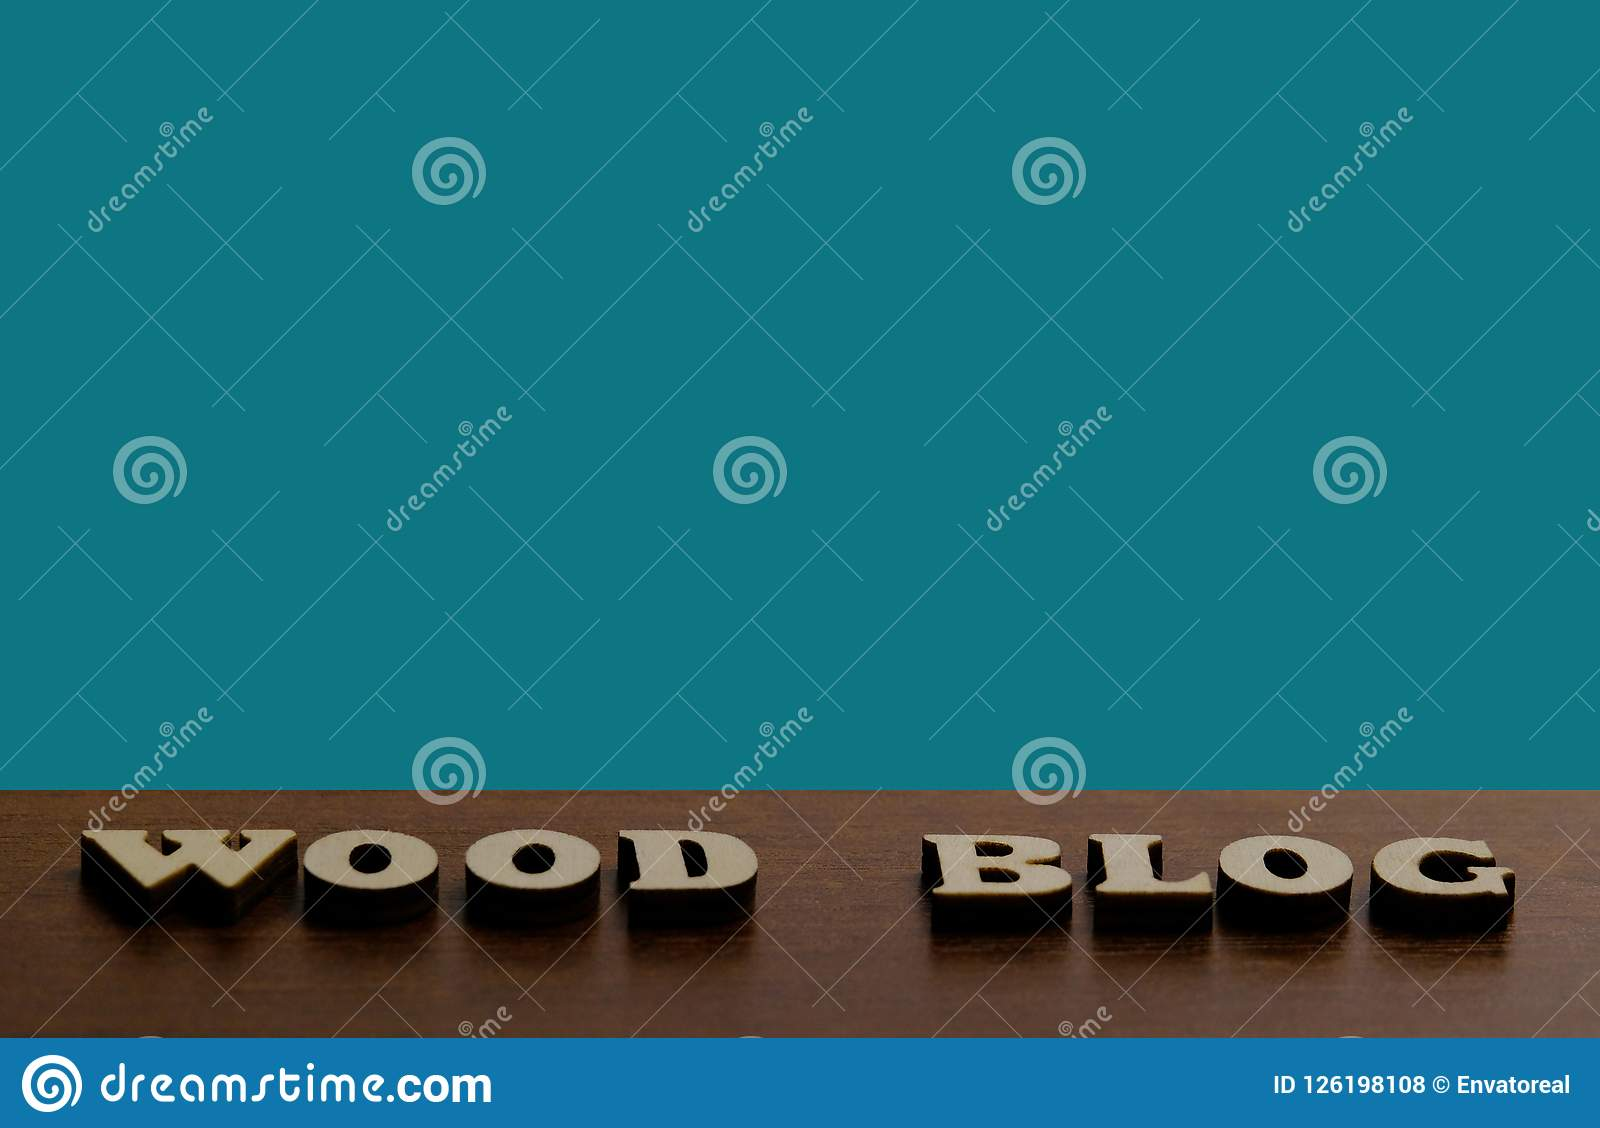 WOOD BLOG. An inscription made of wooden letters against the texture of a dark brown wood. Blue background for copy space.